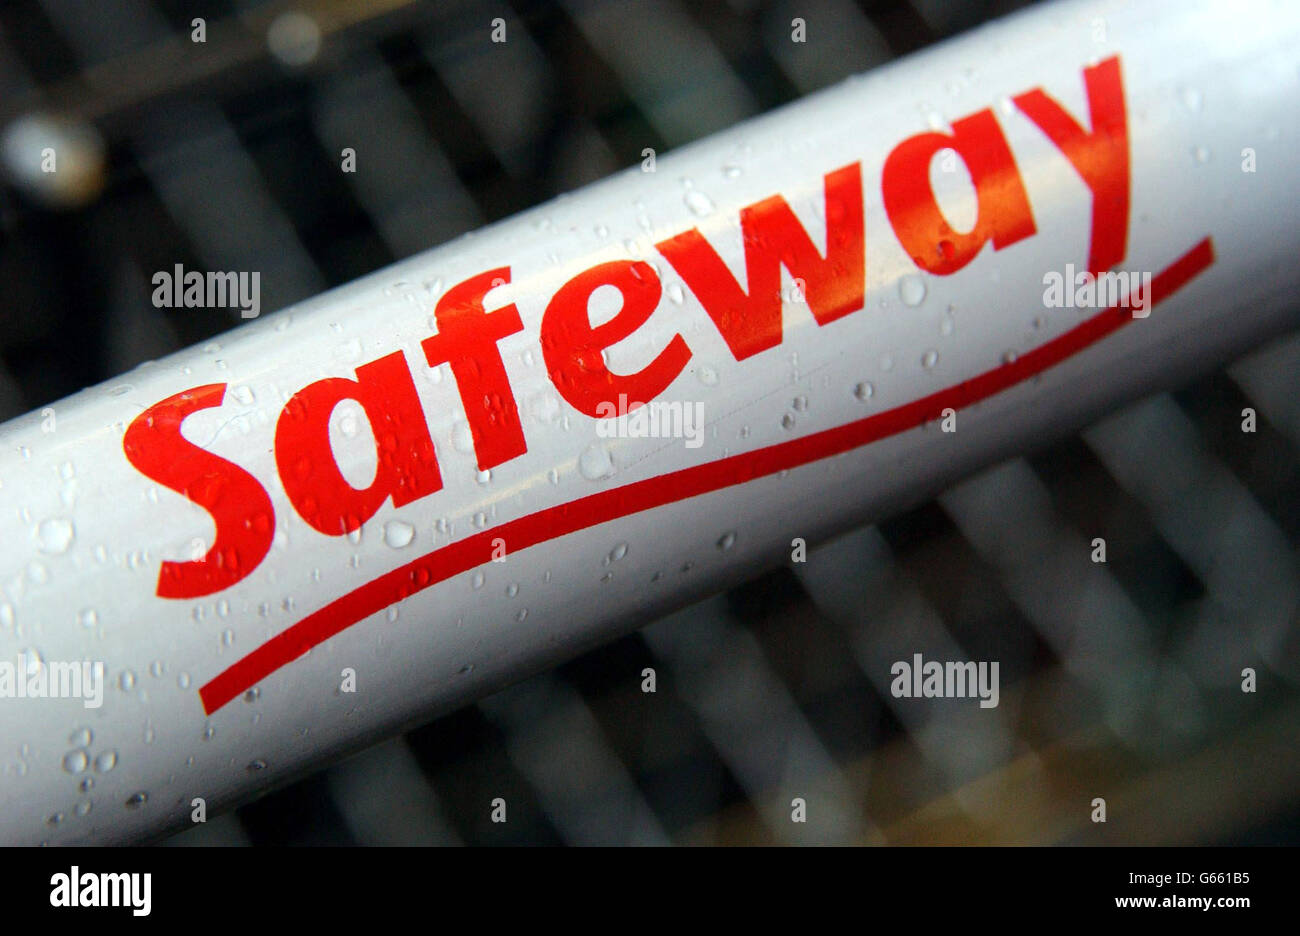 Safeway logo stock photo royalty free image 107082953 alamy safeway logo safeway logo stock photo buycottarizona